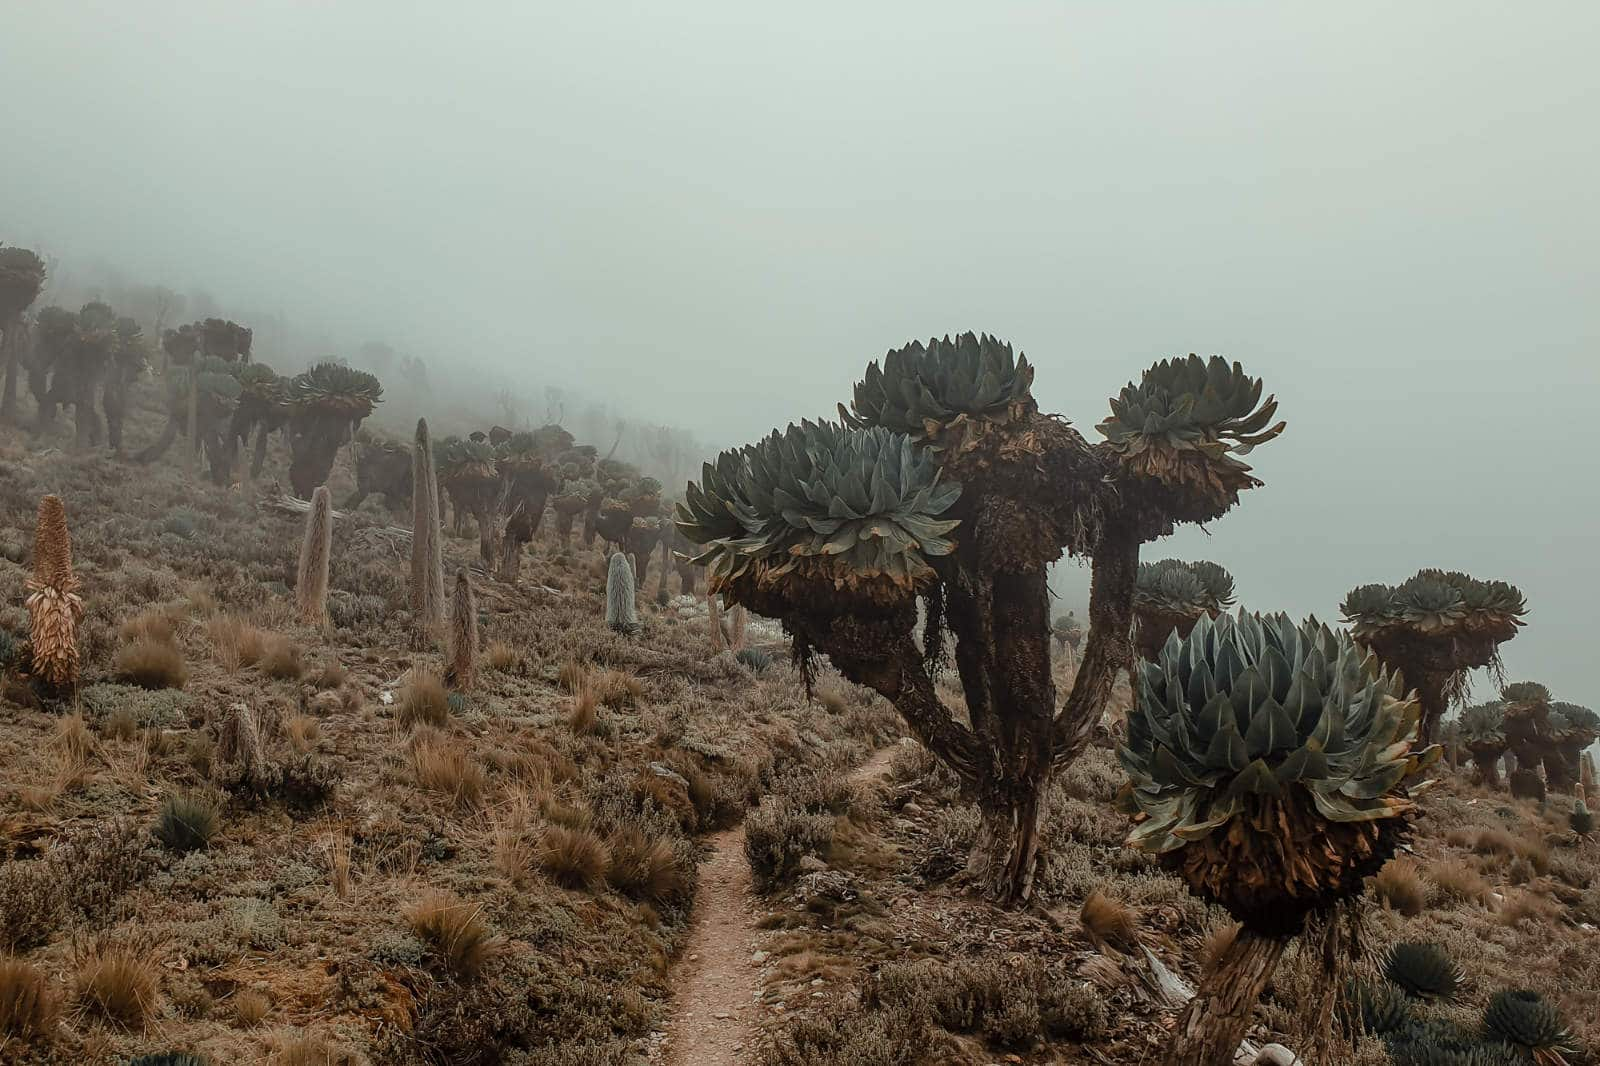 Mt Kenya, Naro Moru route, solo, without guide, in two days